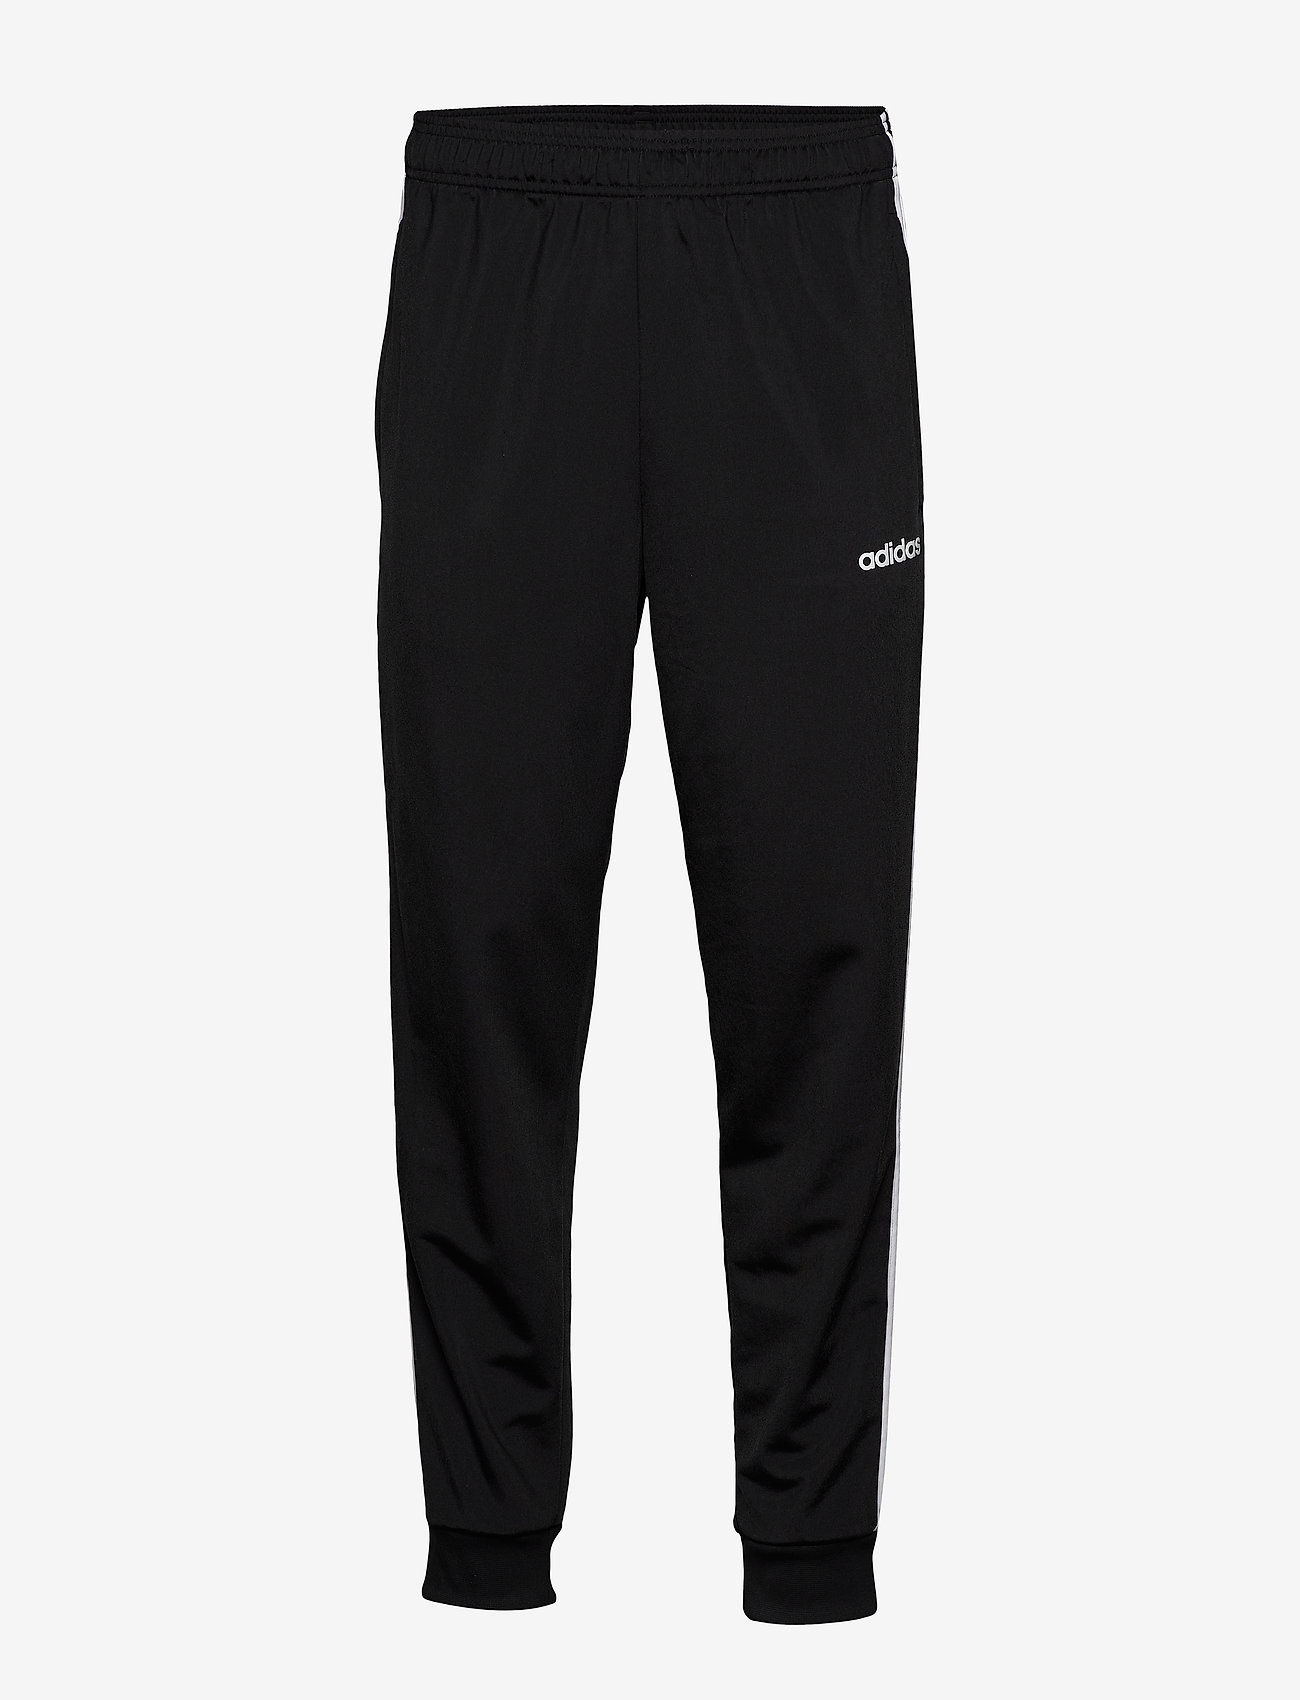 adidas Performance - E 3S T PNT TRIC - pants - black/white - 1